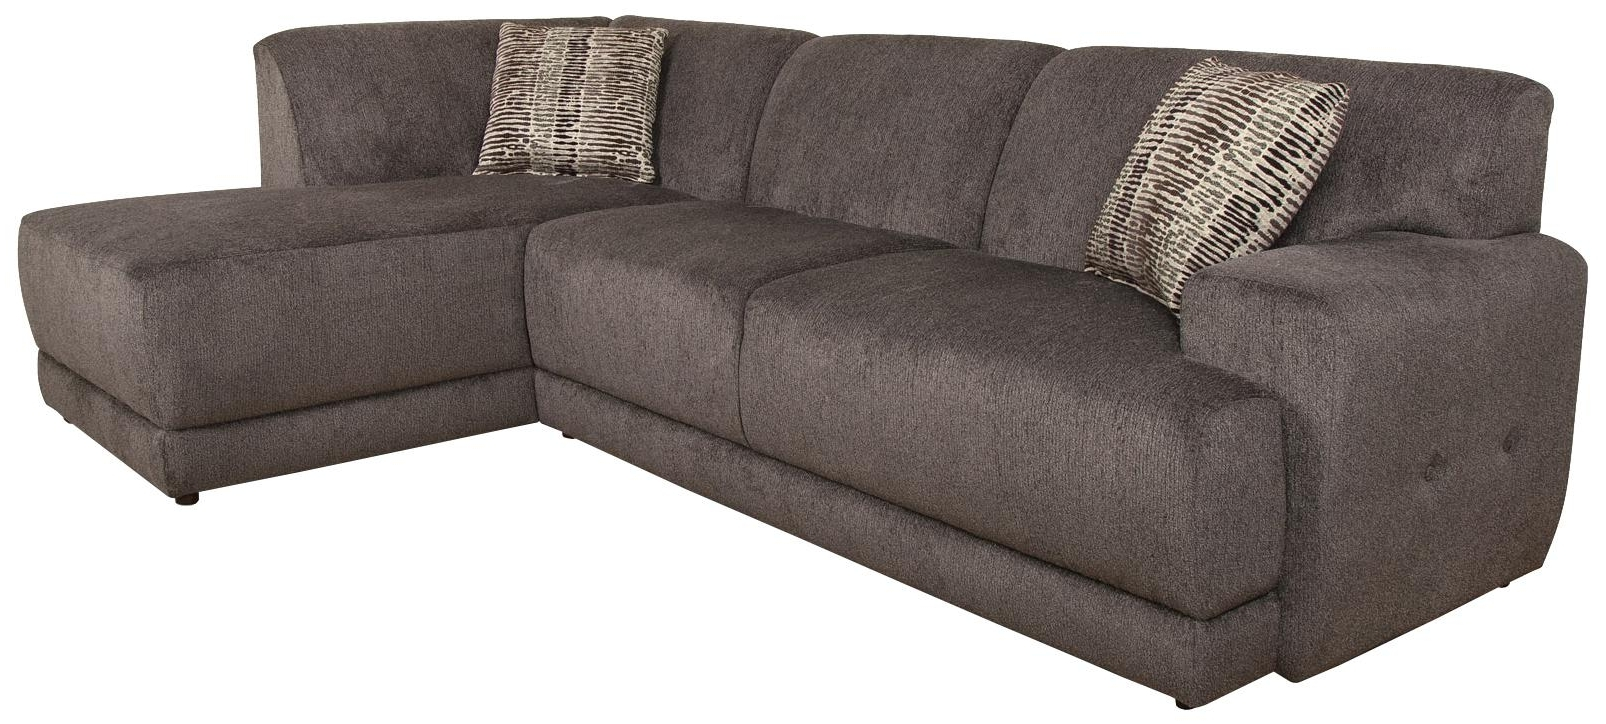 England Sectional Sofas Inside Latest England Cole Contemporary Sectional Sofa With Right Facing Chaise (View 8 of 15)